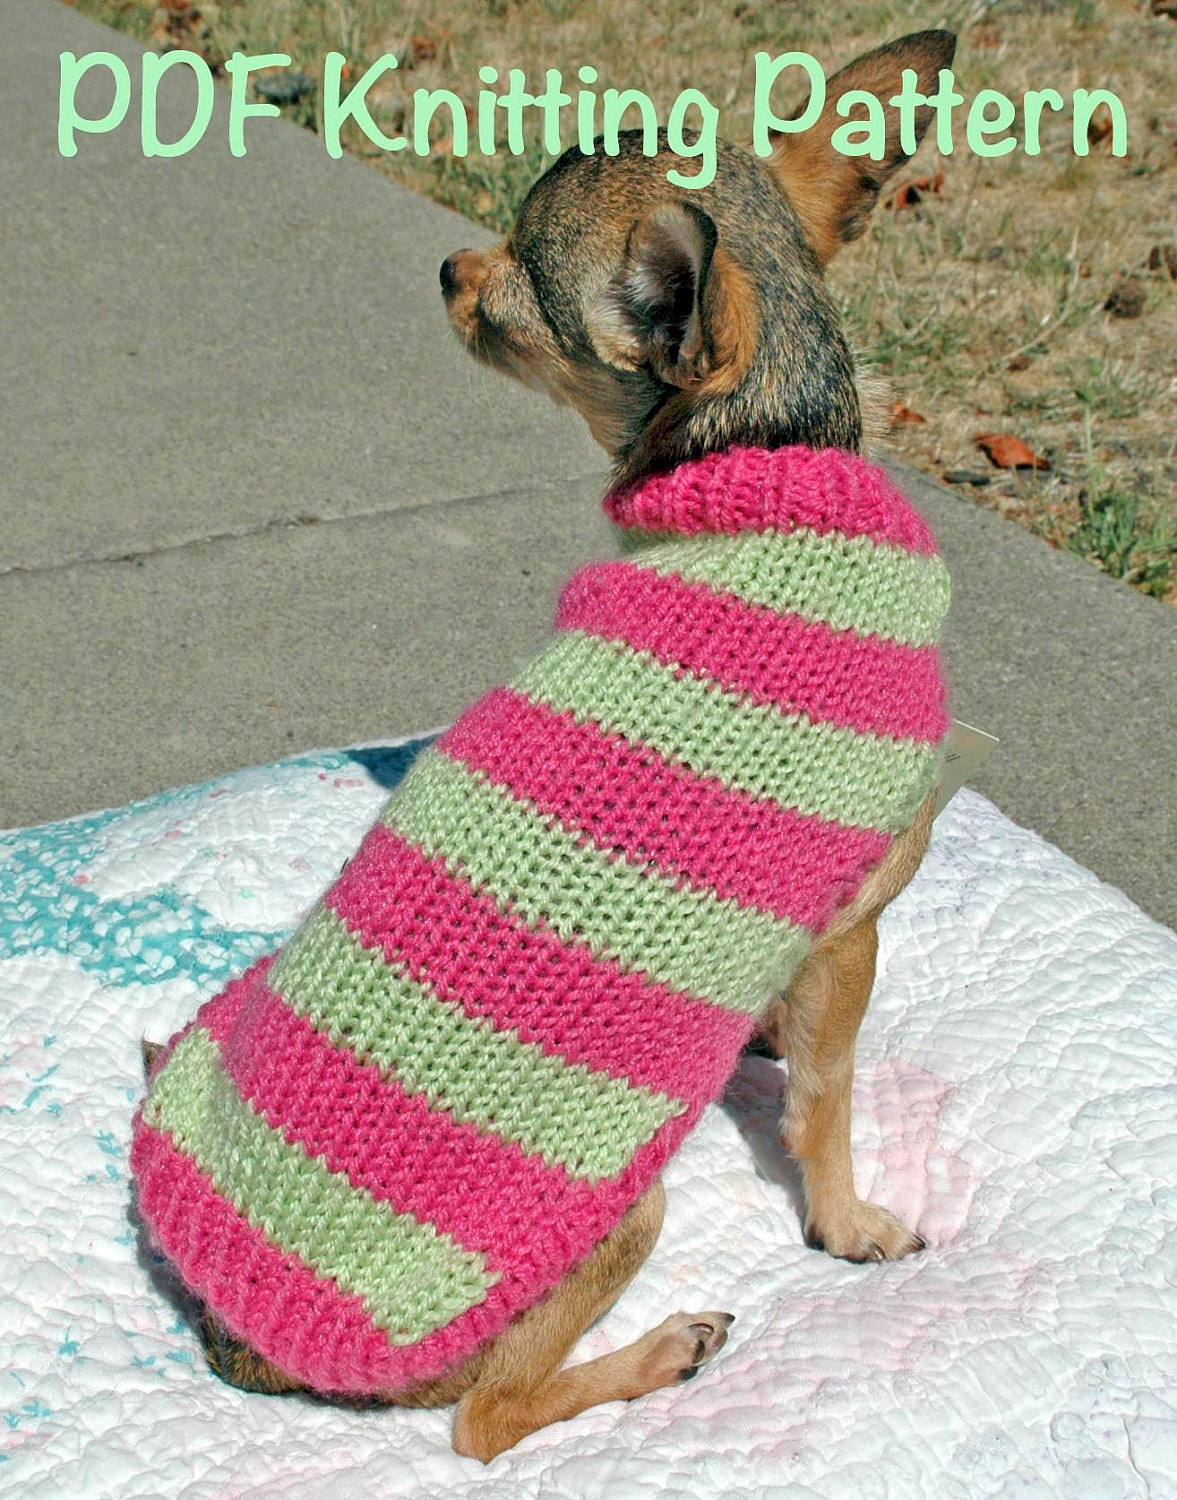 Knitted Dog Sweater Patterns Free : Easy & Cute Dog Sweater Knitting Pattern by DimpleberryHill